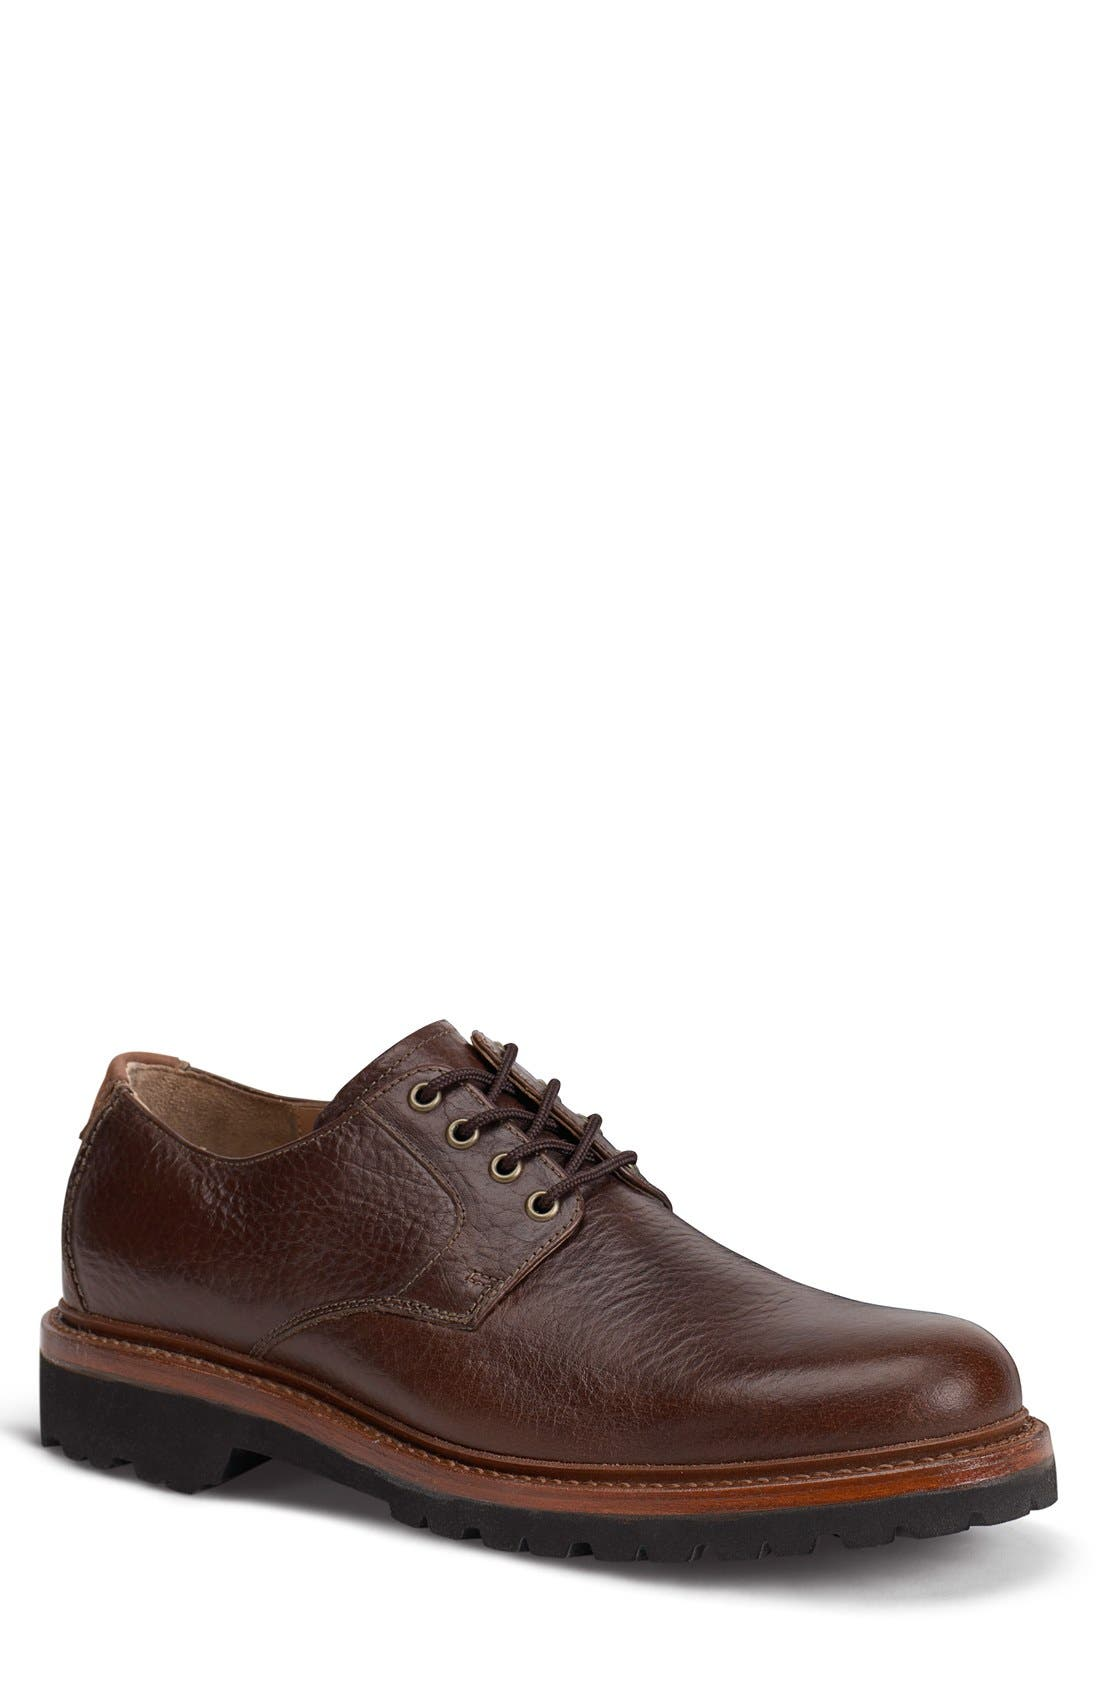 'Gallatin II' Oxford,                             Main thumbnail 1, color,                             Bourbon Leather